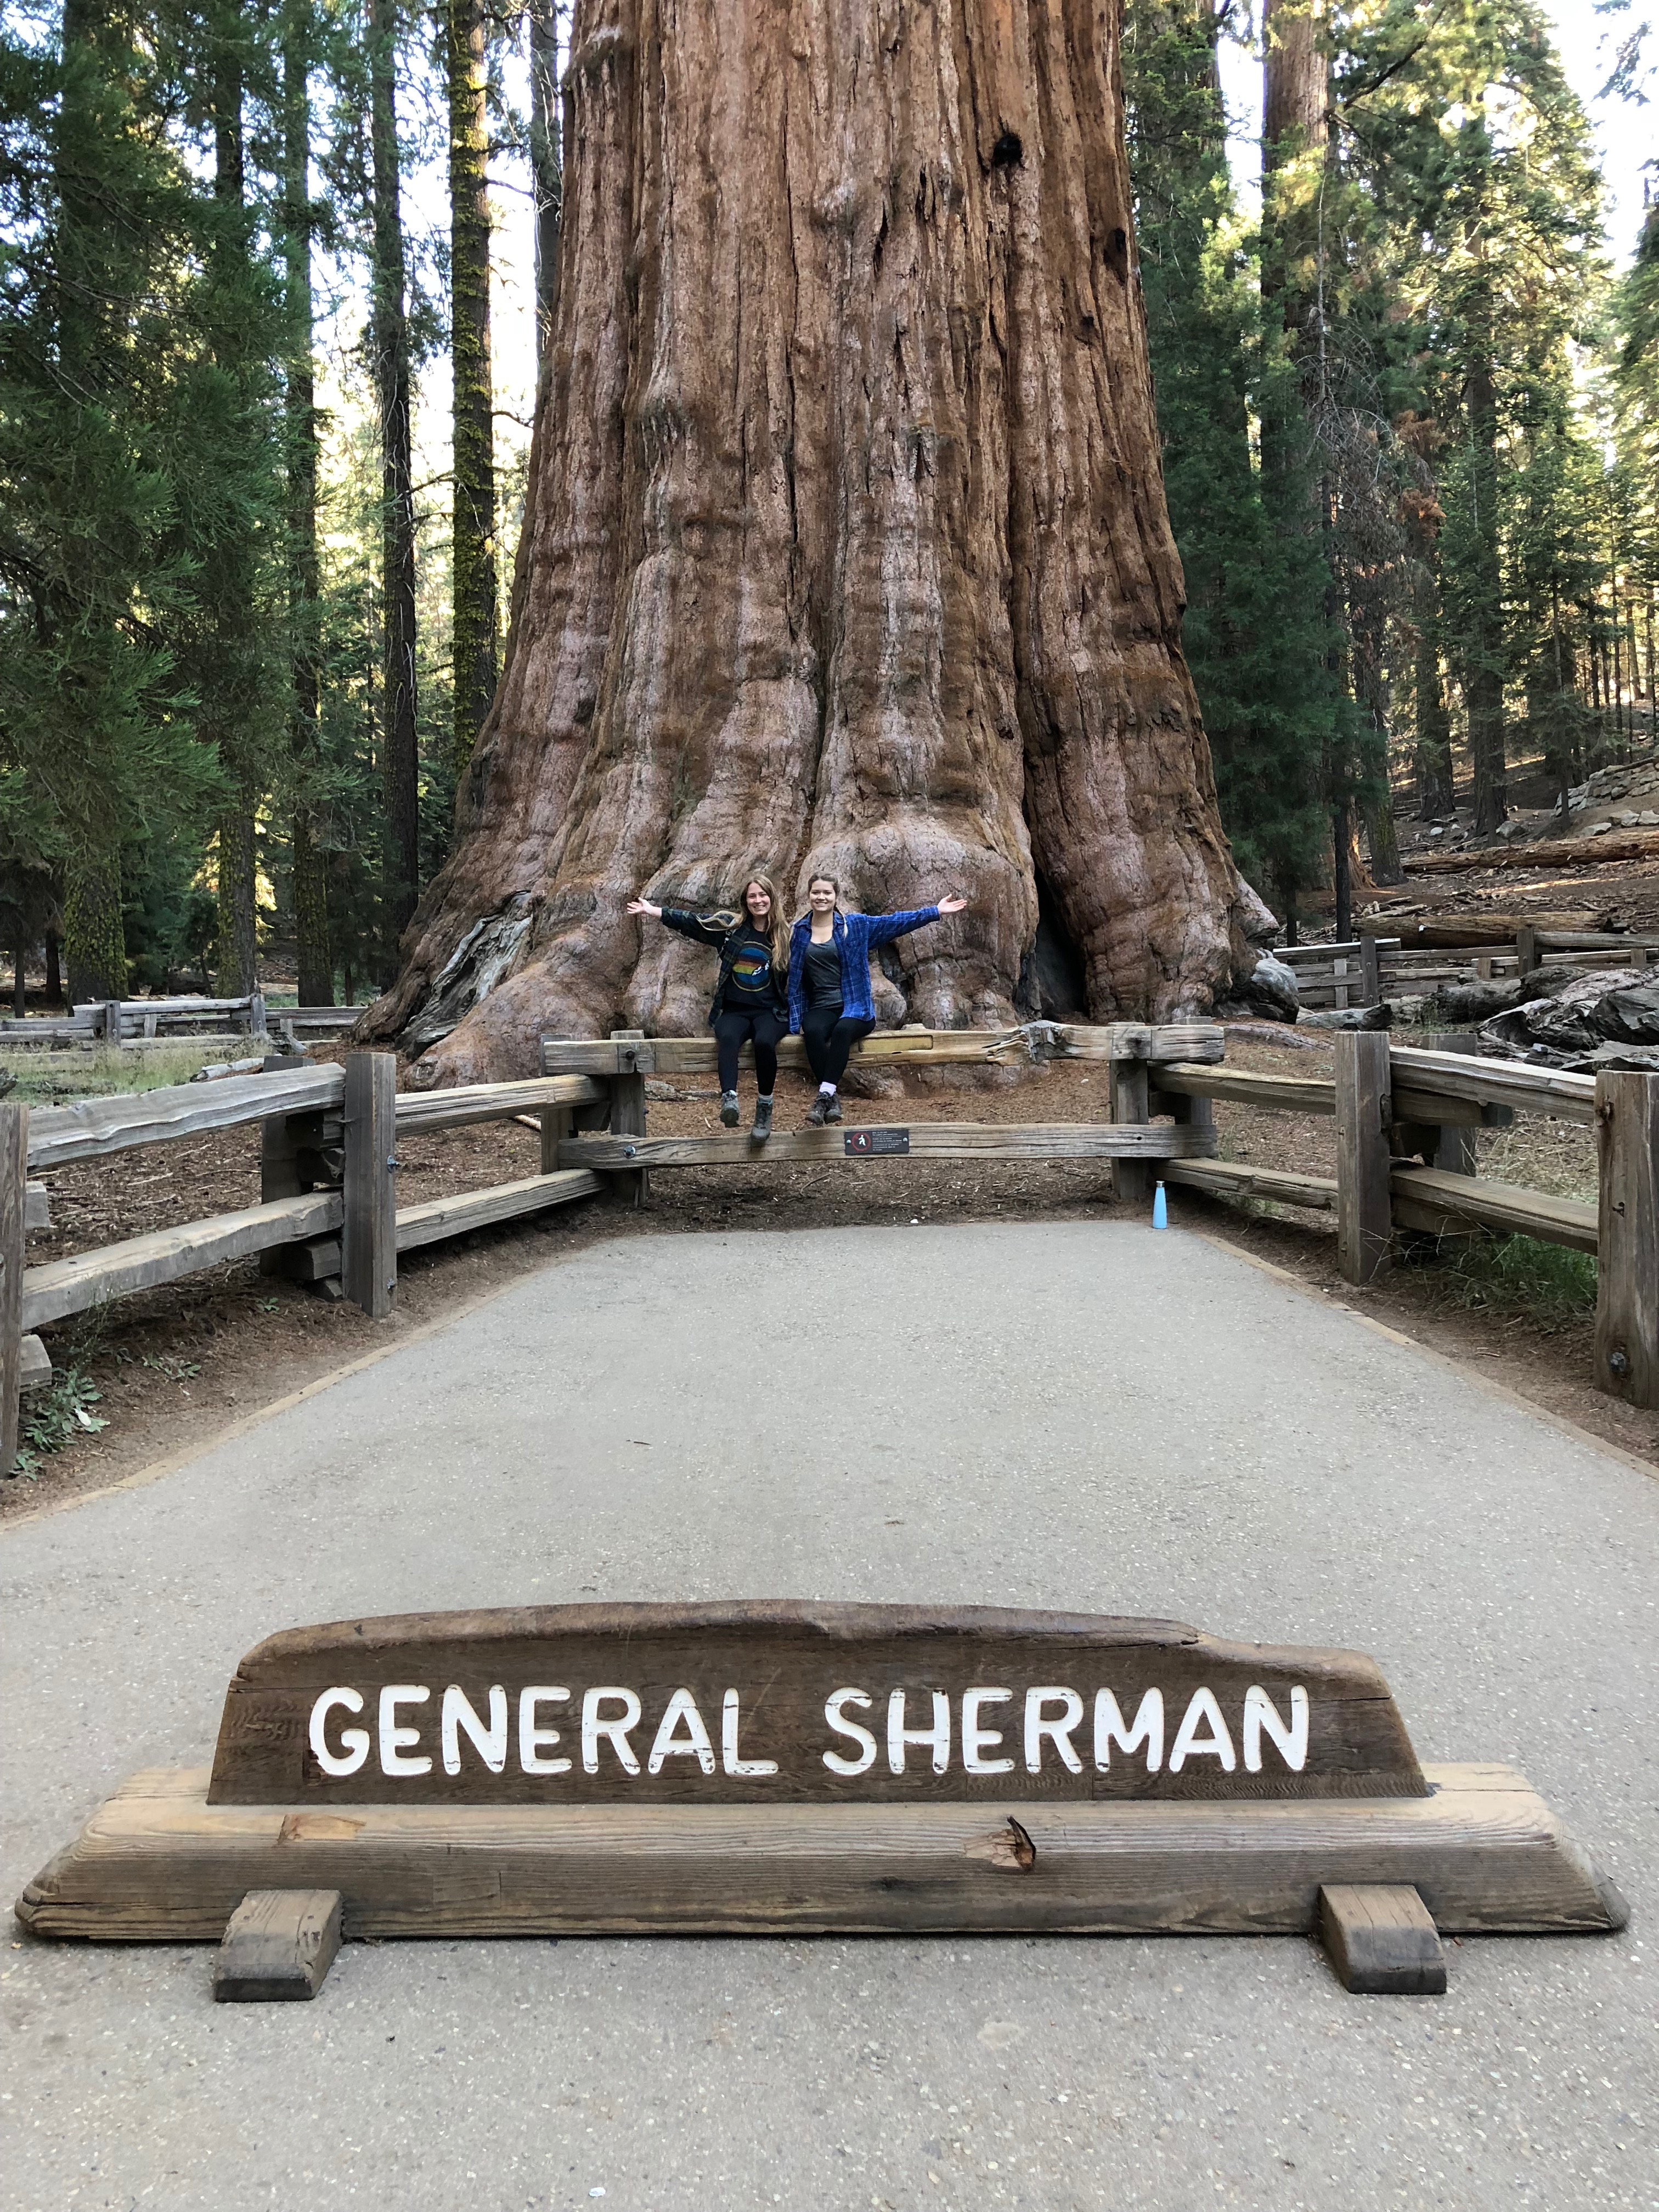 sequoia national park itinerary General Sherman Tree